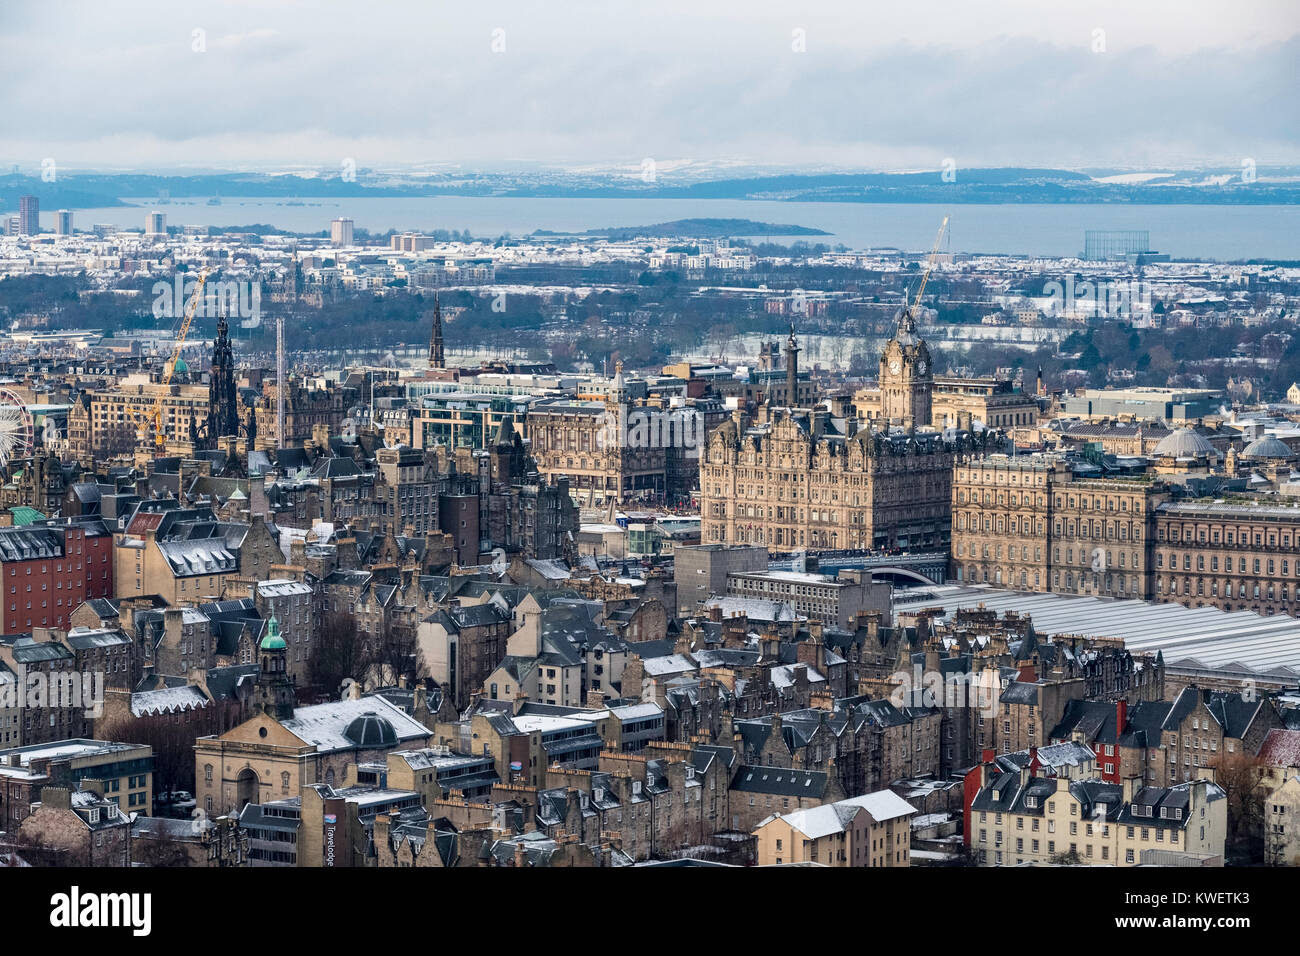 View over city centre of Edinburgh during winter after a snowfall, Scotland, United Kingdom. - Stock Image